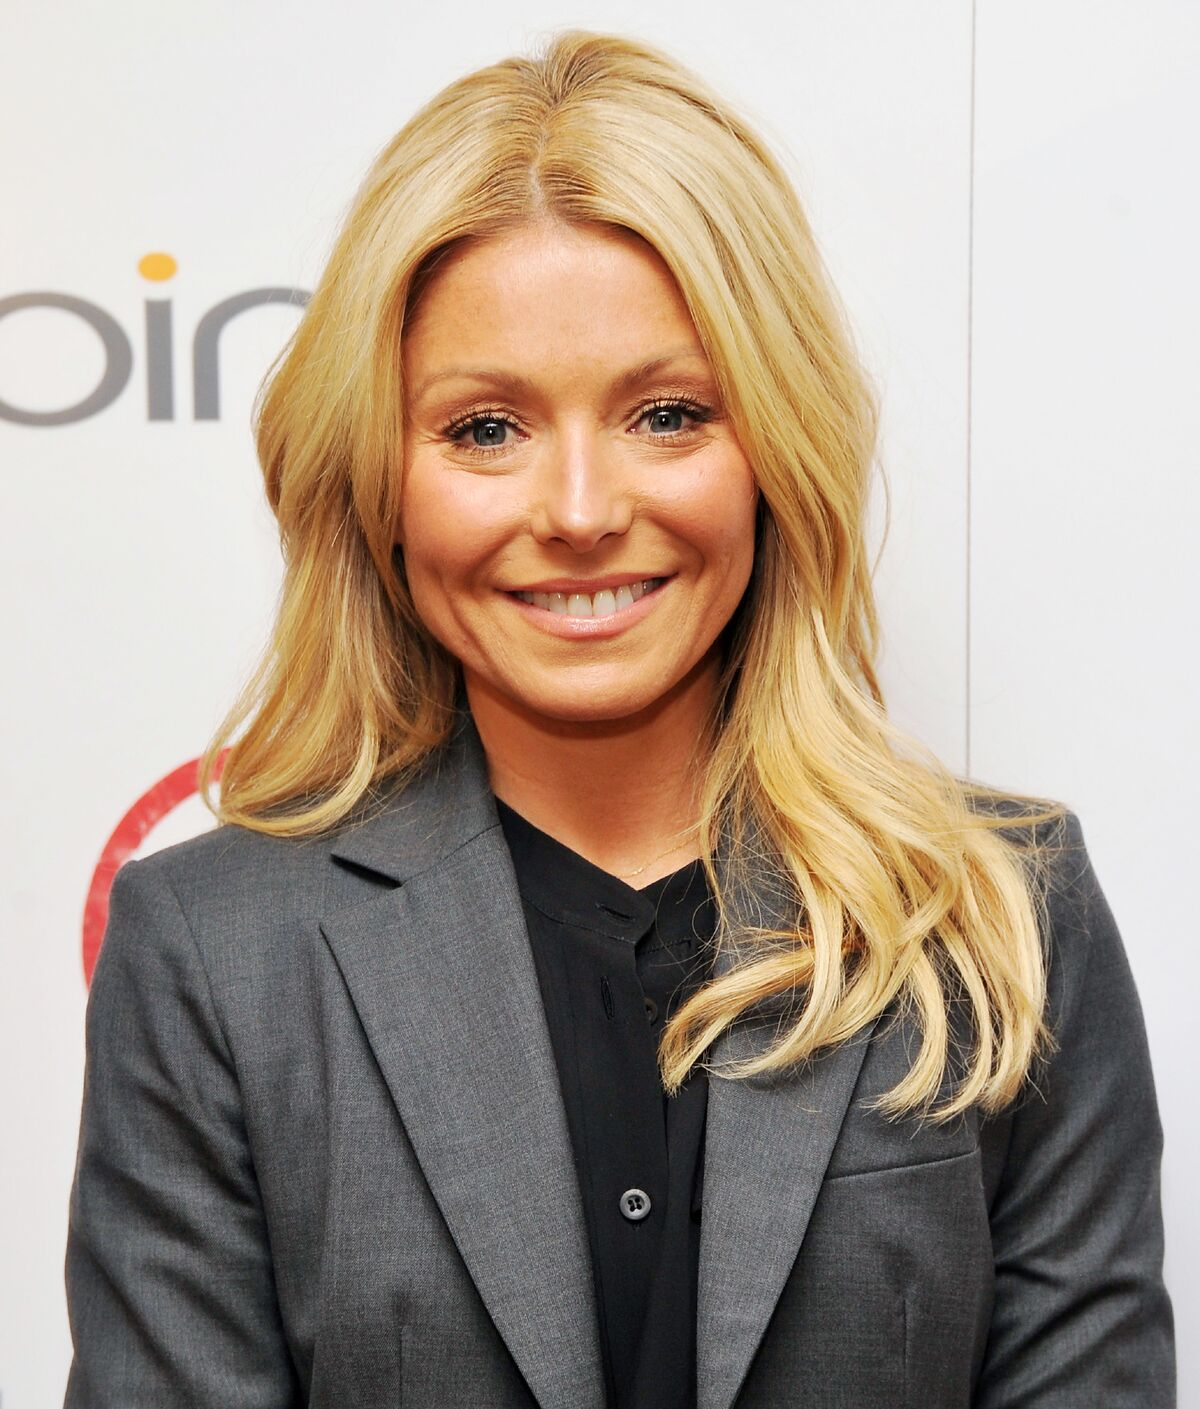 """Kelly Ripa attends The Weinstein Company & Bing screening Of """"Bully"""" on March 11, 2012 in New York City.   Photo: Getty Images"""